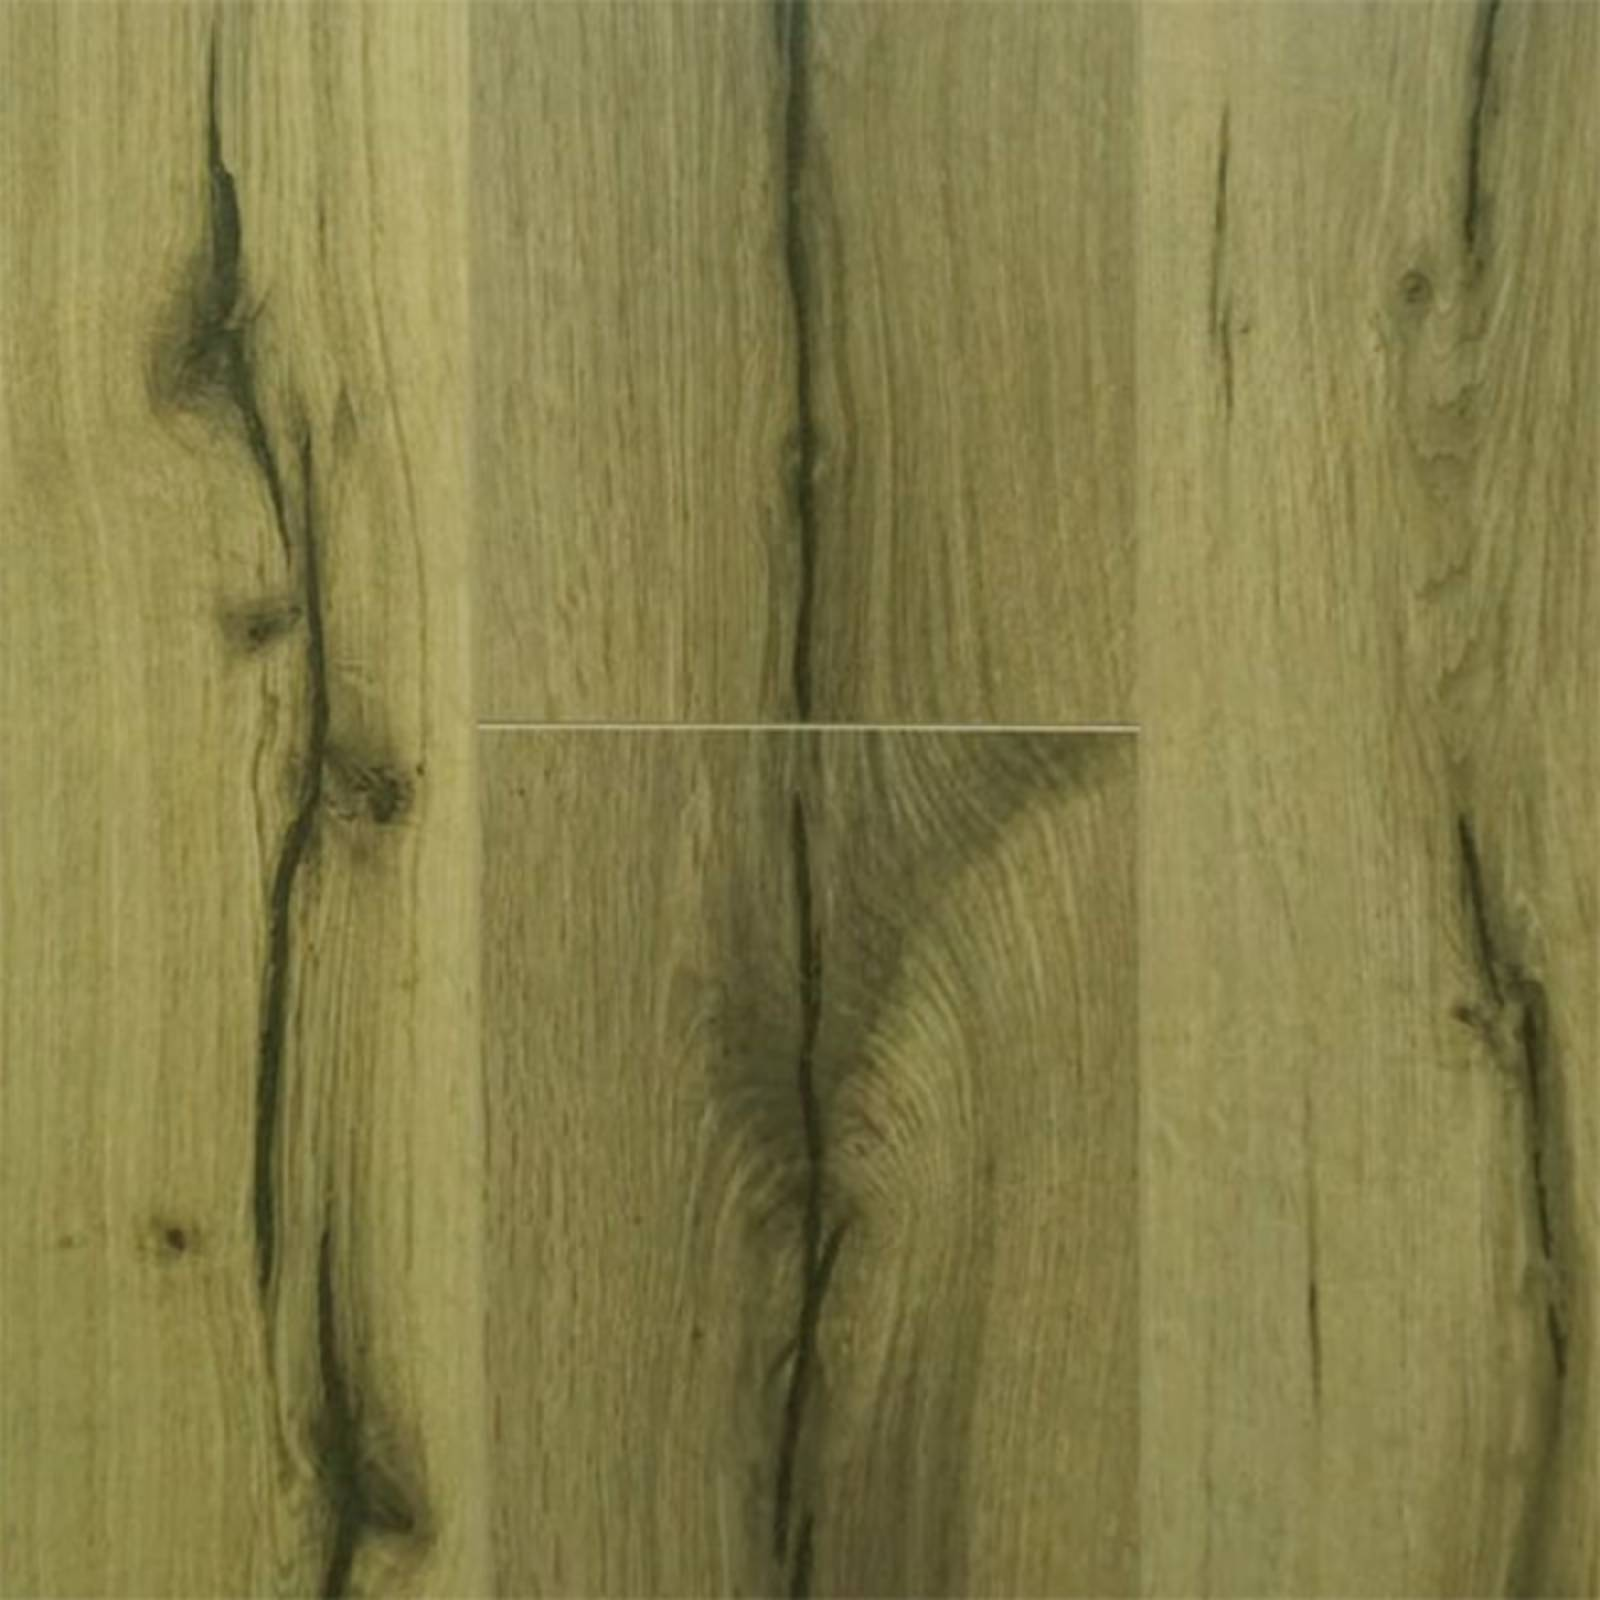 Greenearth Bordeaux 2.2 laminate flooring